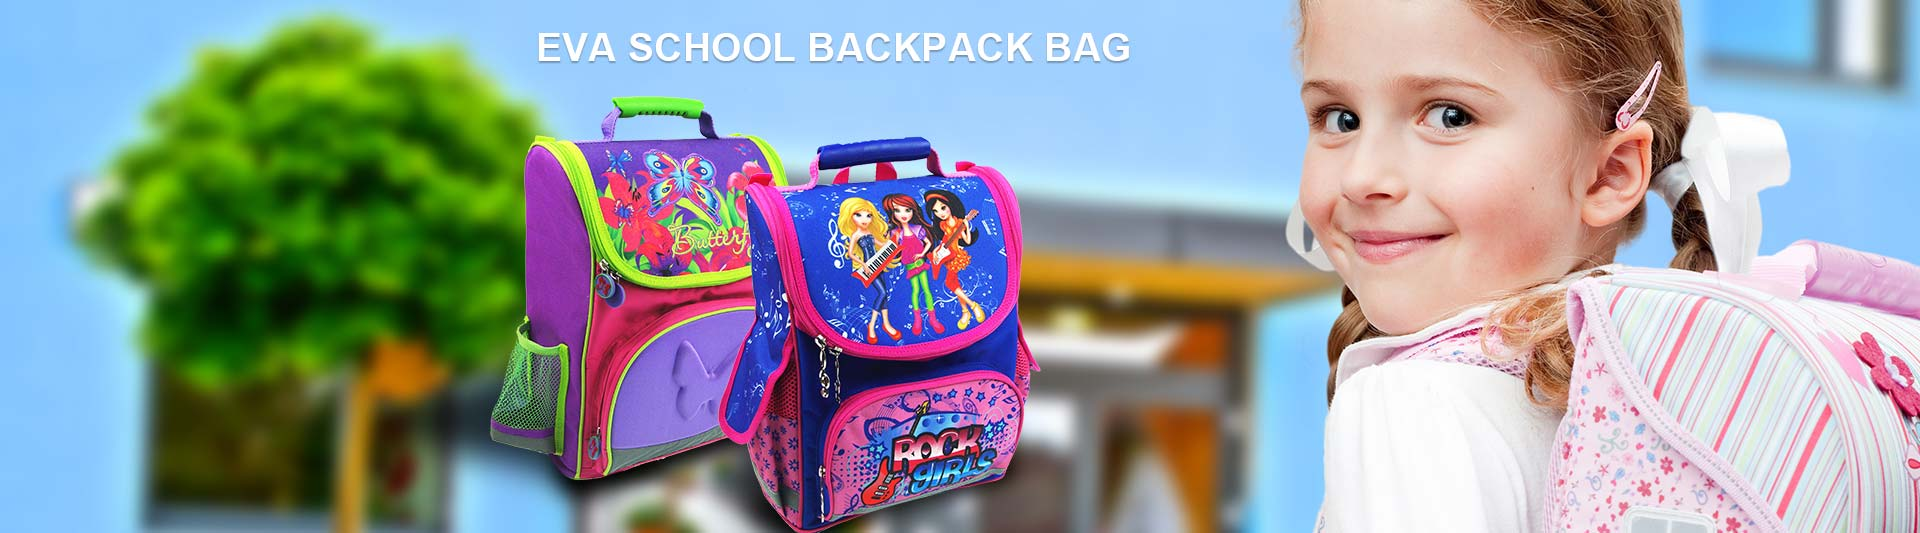 EVA School Backpack Bag